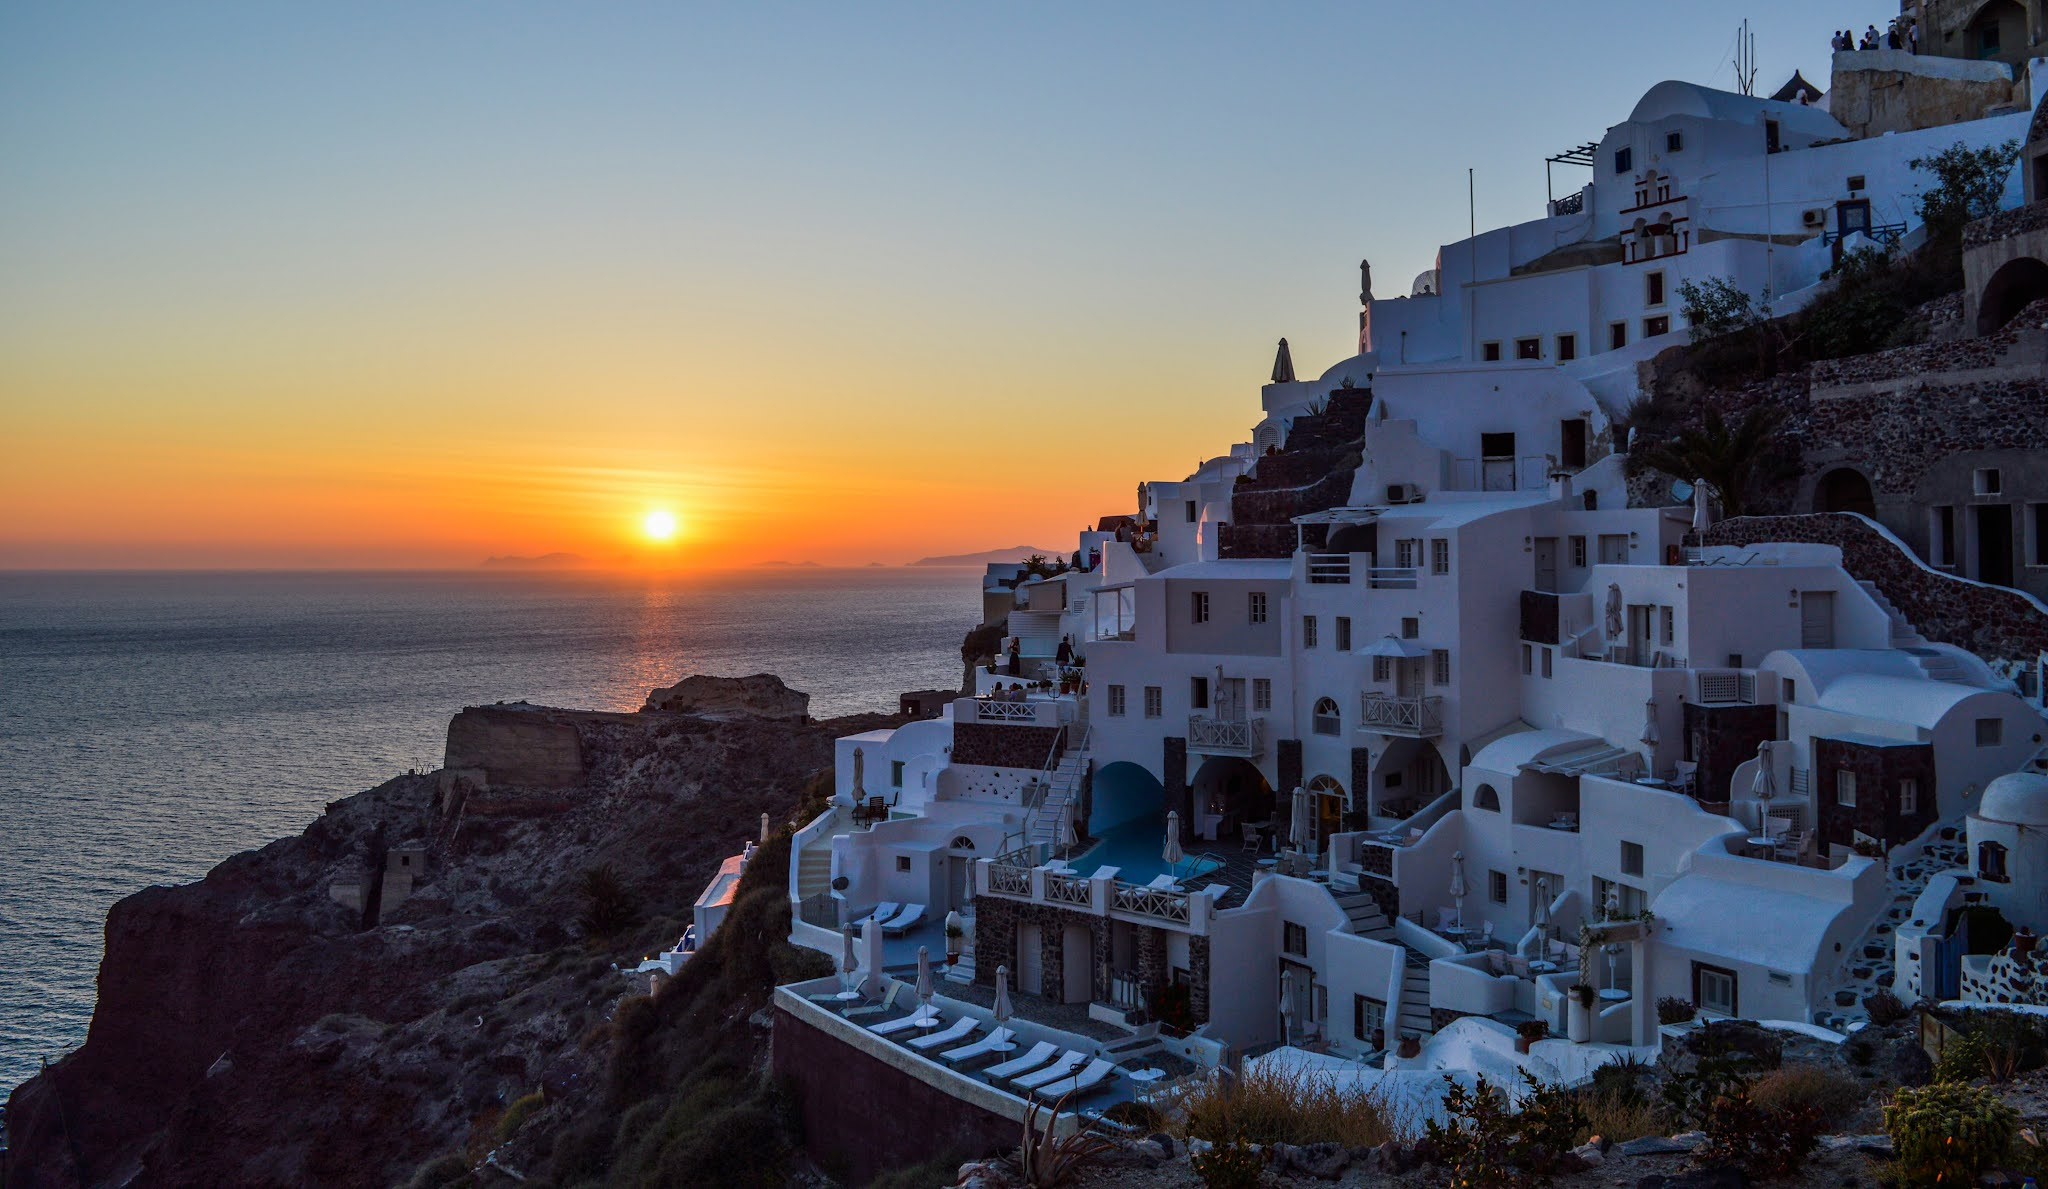 Santorini at sunset free stock image from Pexels by Gotta Be Worth It